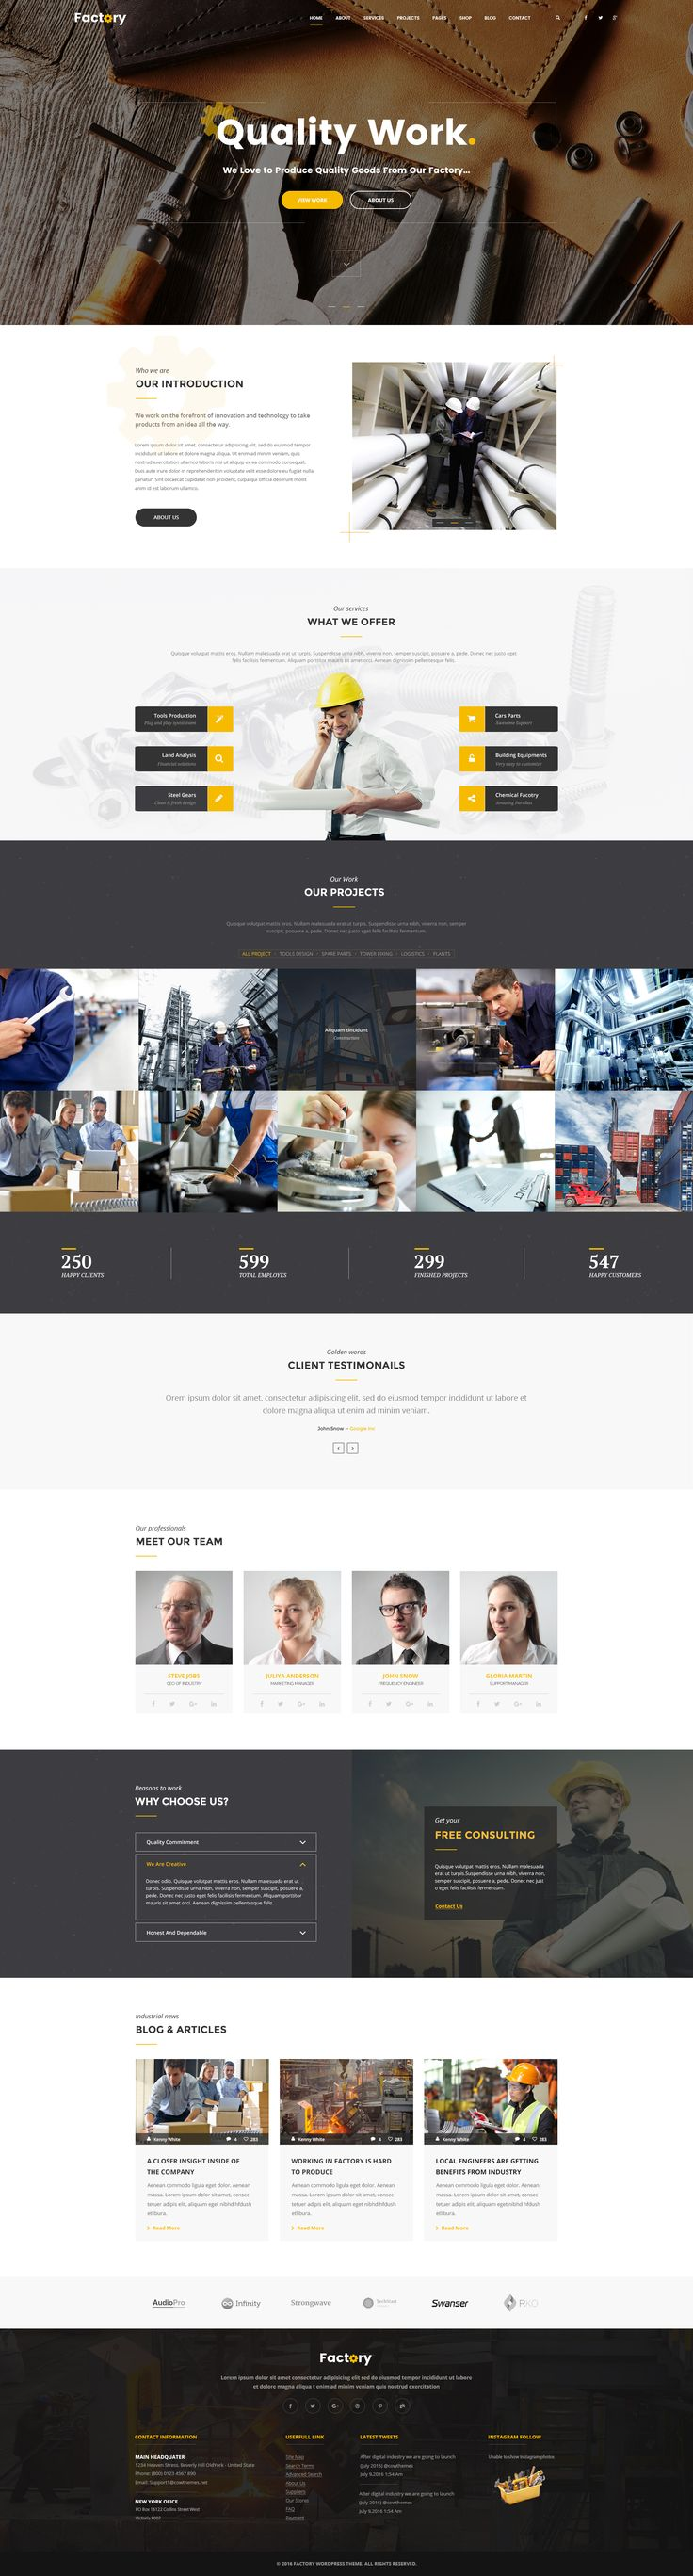 Mega Pack - Factory, Industry & Construction PSD Template • Download ➝ https://themeforest.net/item/mega-pack-factory-industry-construction-psd-template/18436748?ref=pxcr